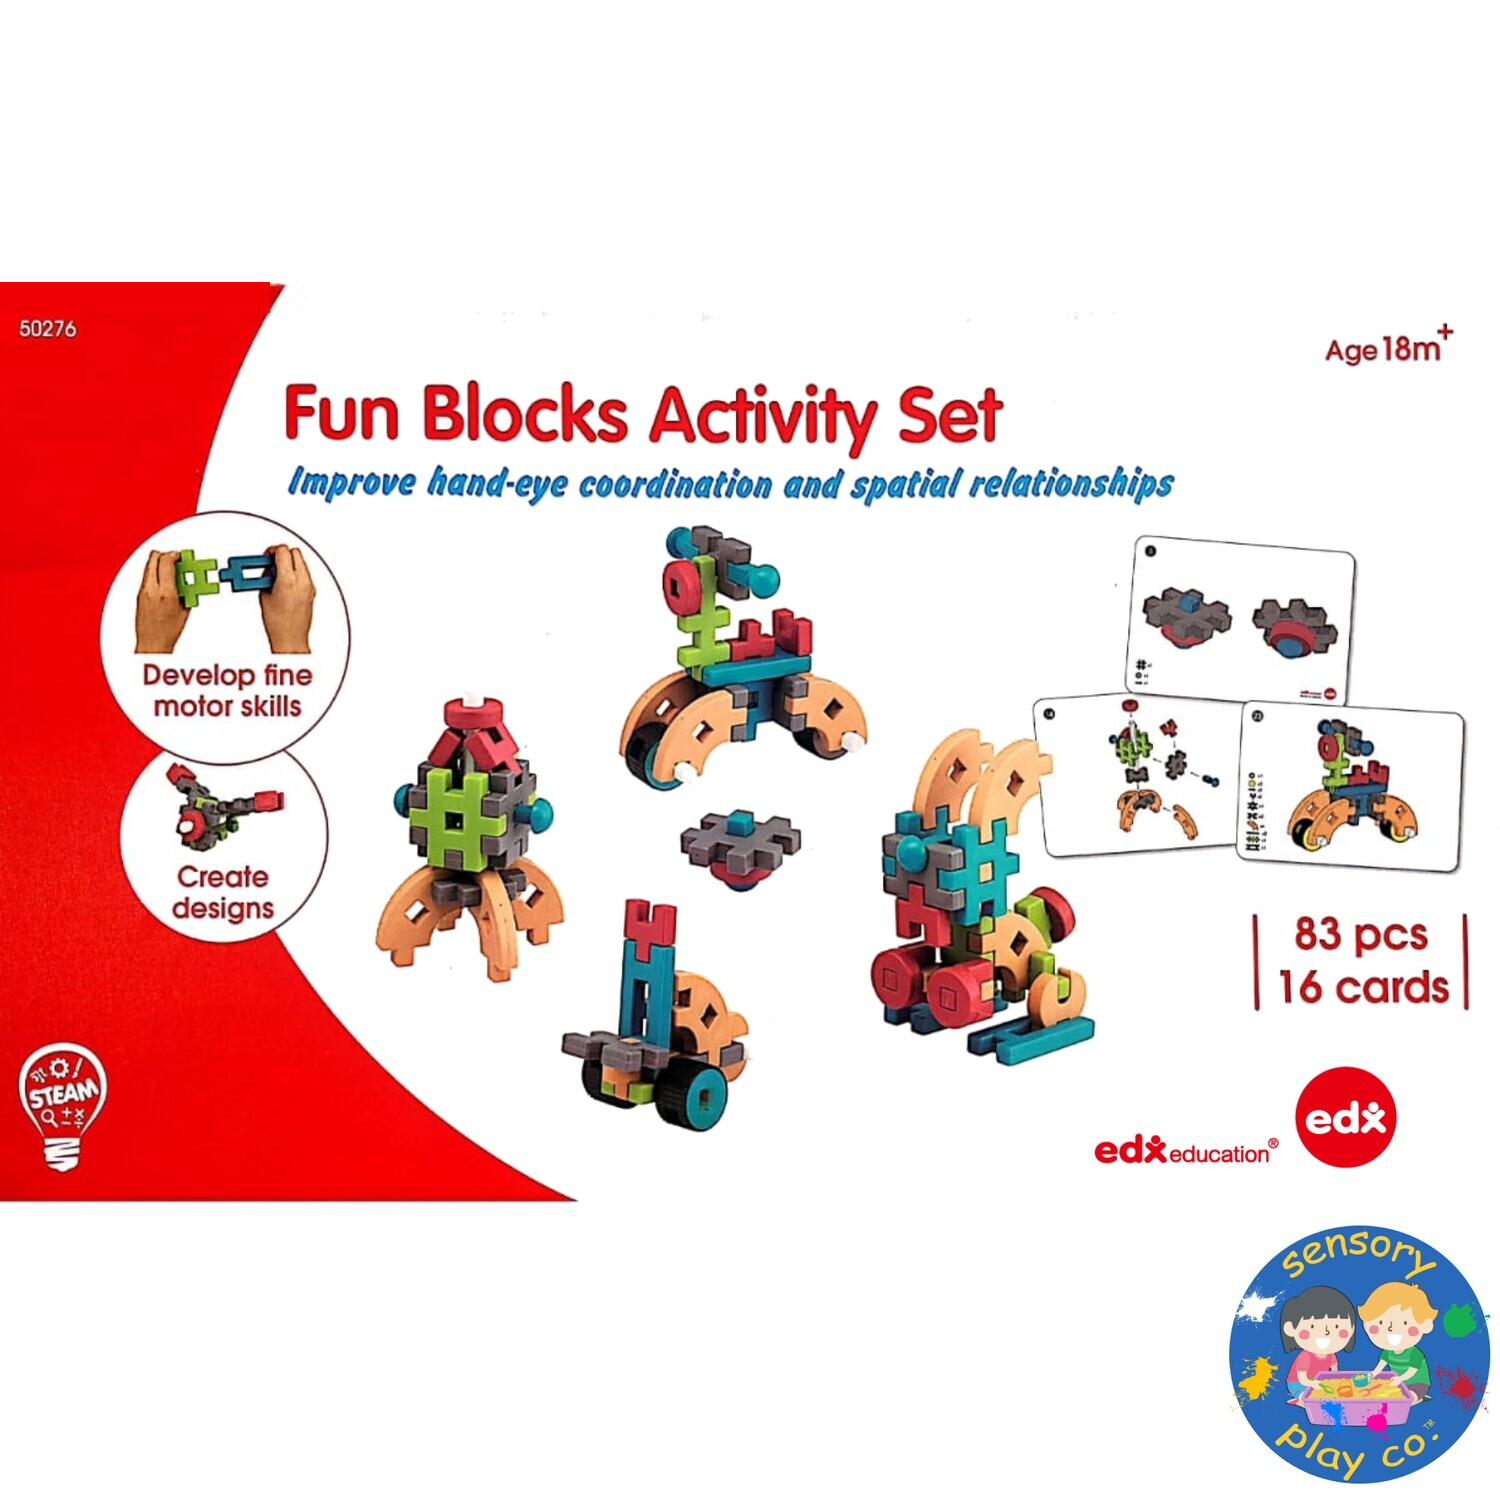 Fun Blocks Activity Set (83 pcs, 16 double-sided Activity cards)